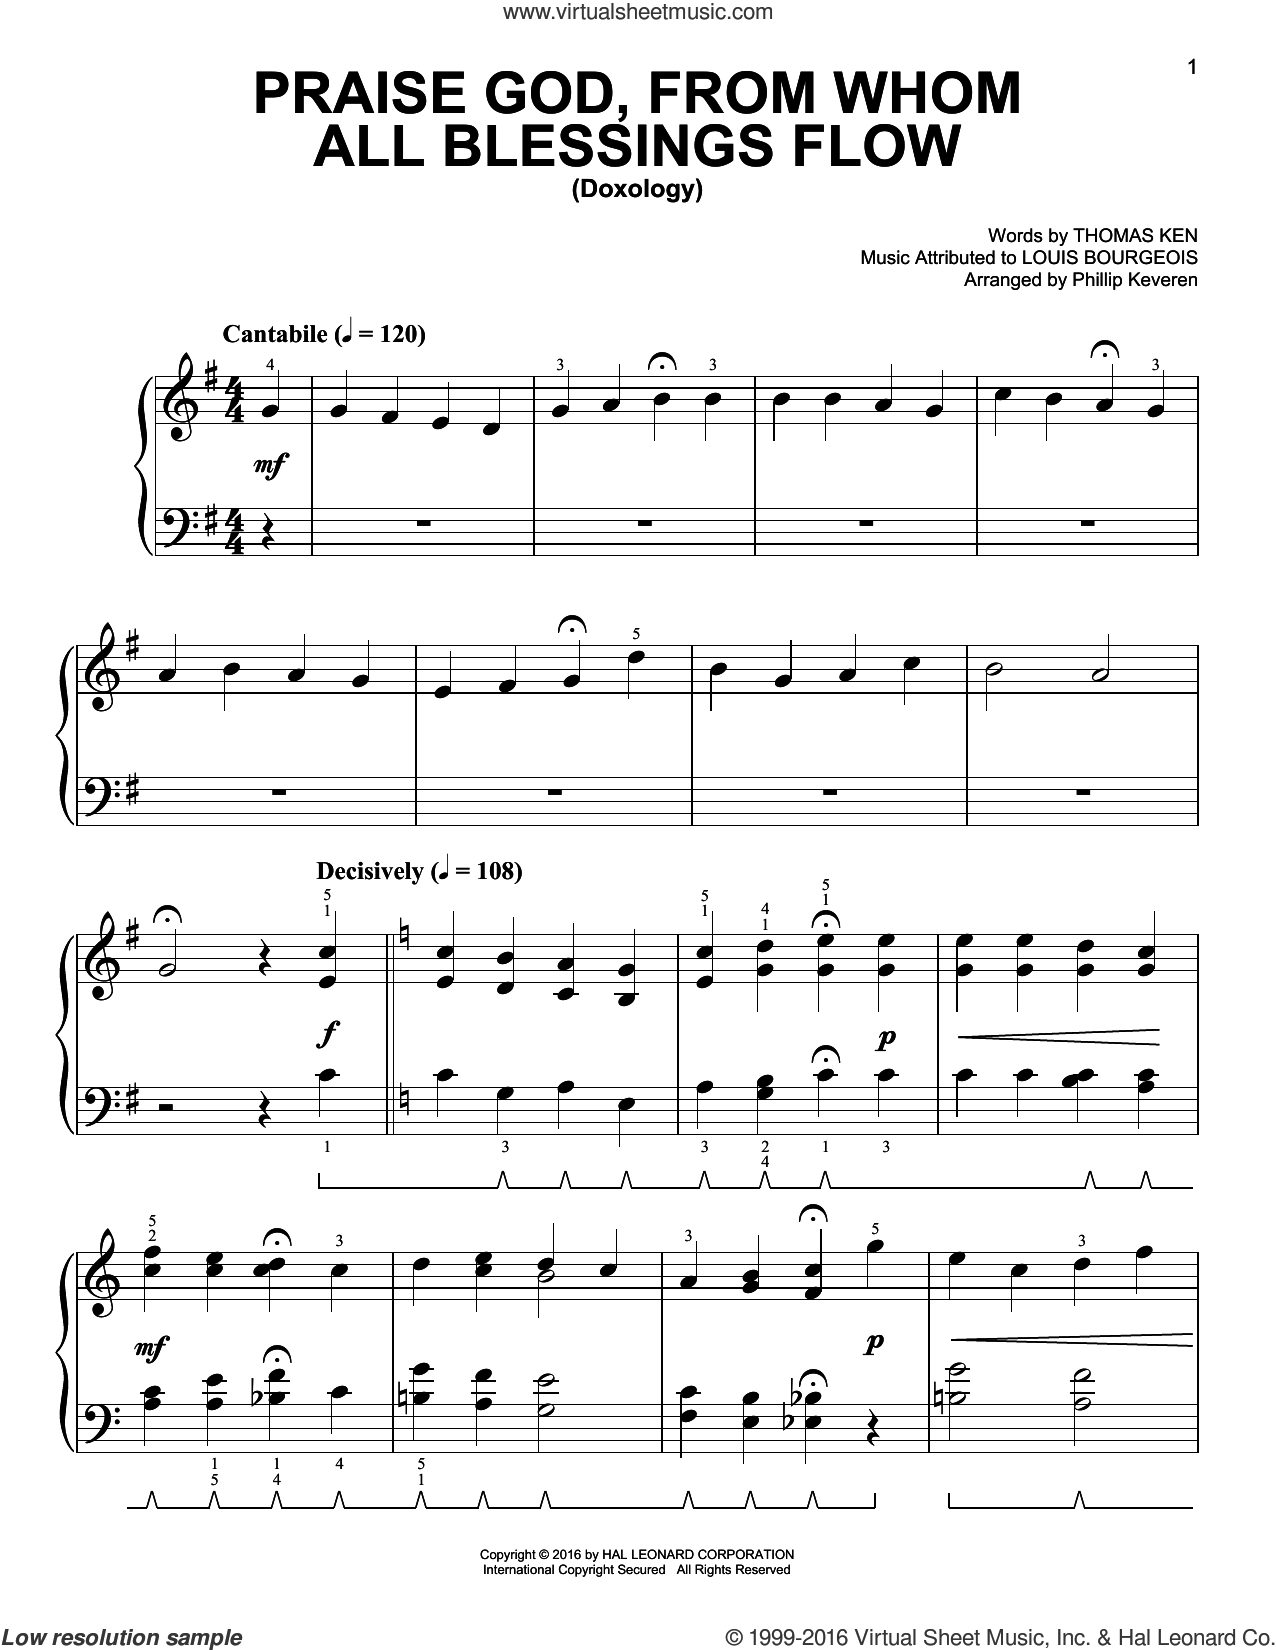 Praise God, From Whom All Blessings Flow [Classical version] (arr. Phillip Keveren) sheet music for piano solo by Thomas Ken, Phillip Keveren and Louis Bourgeois, easy skill level